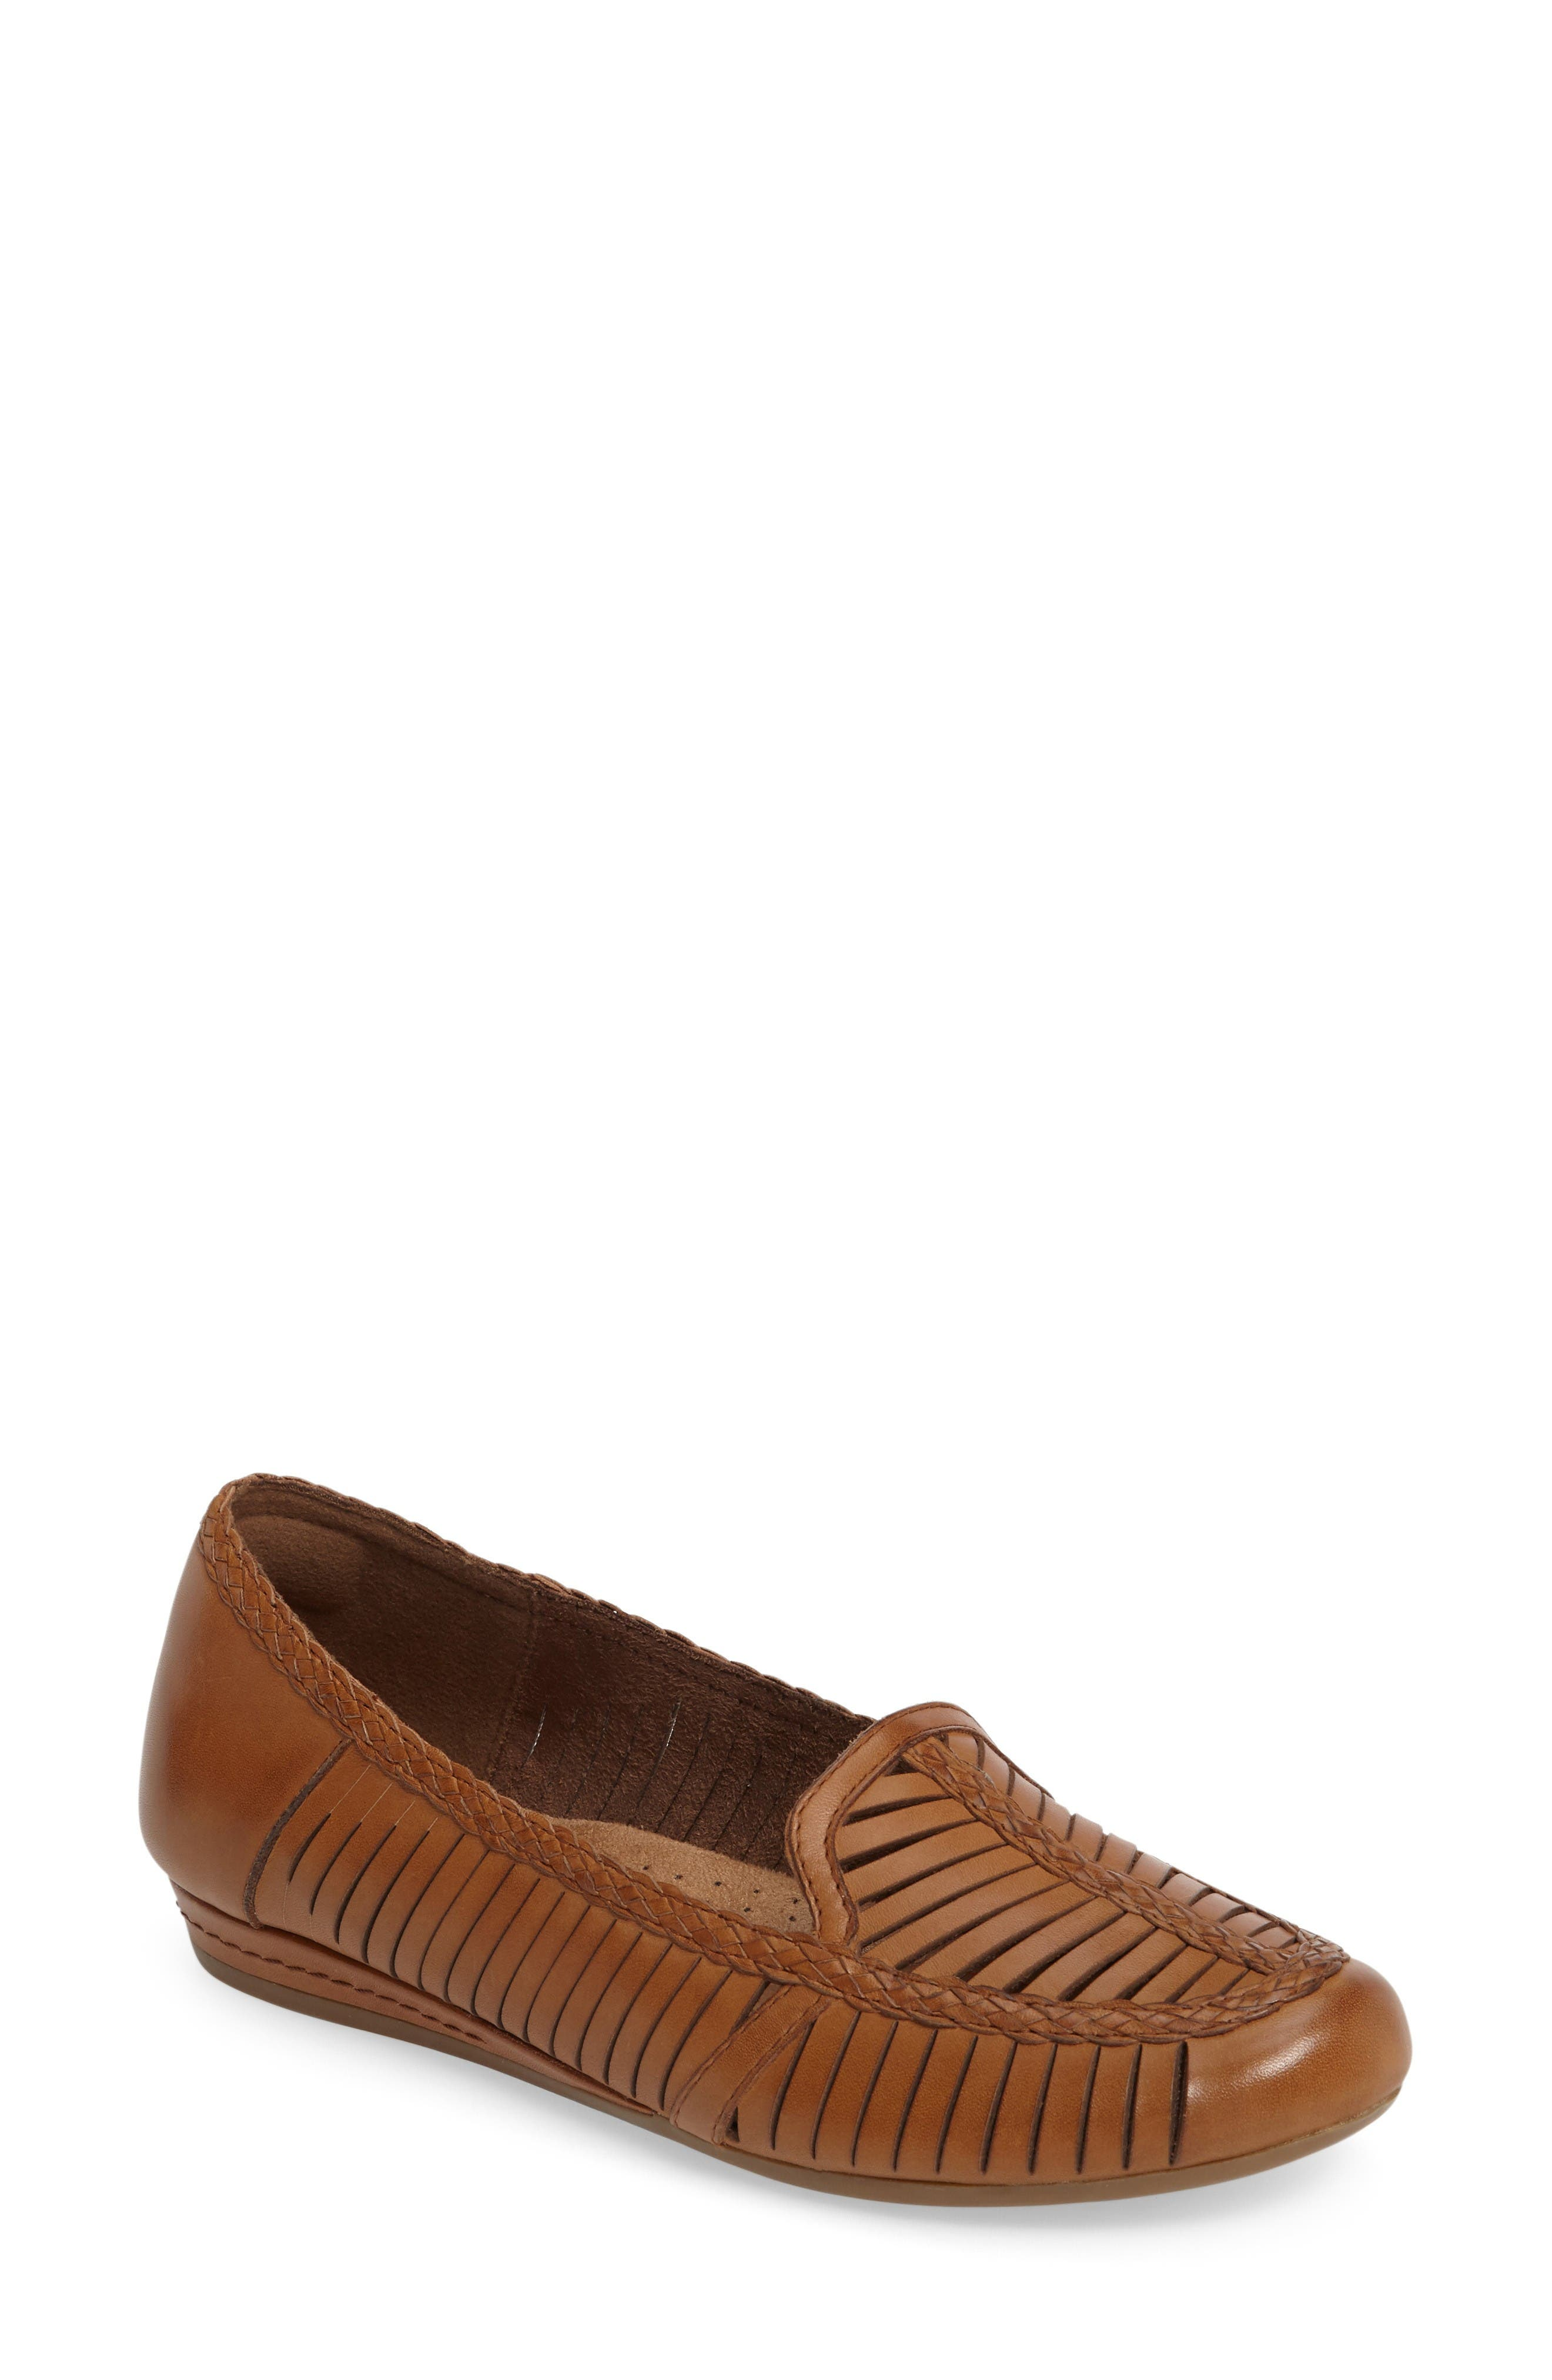 Galway Loafer,                         Main,                         color, Tan Multi Leather